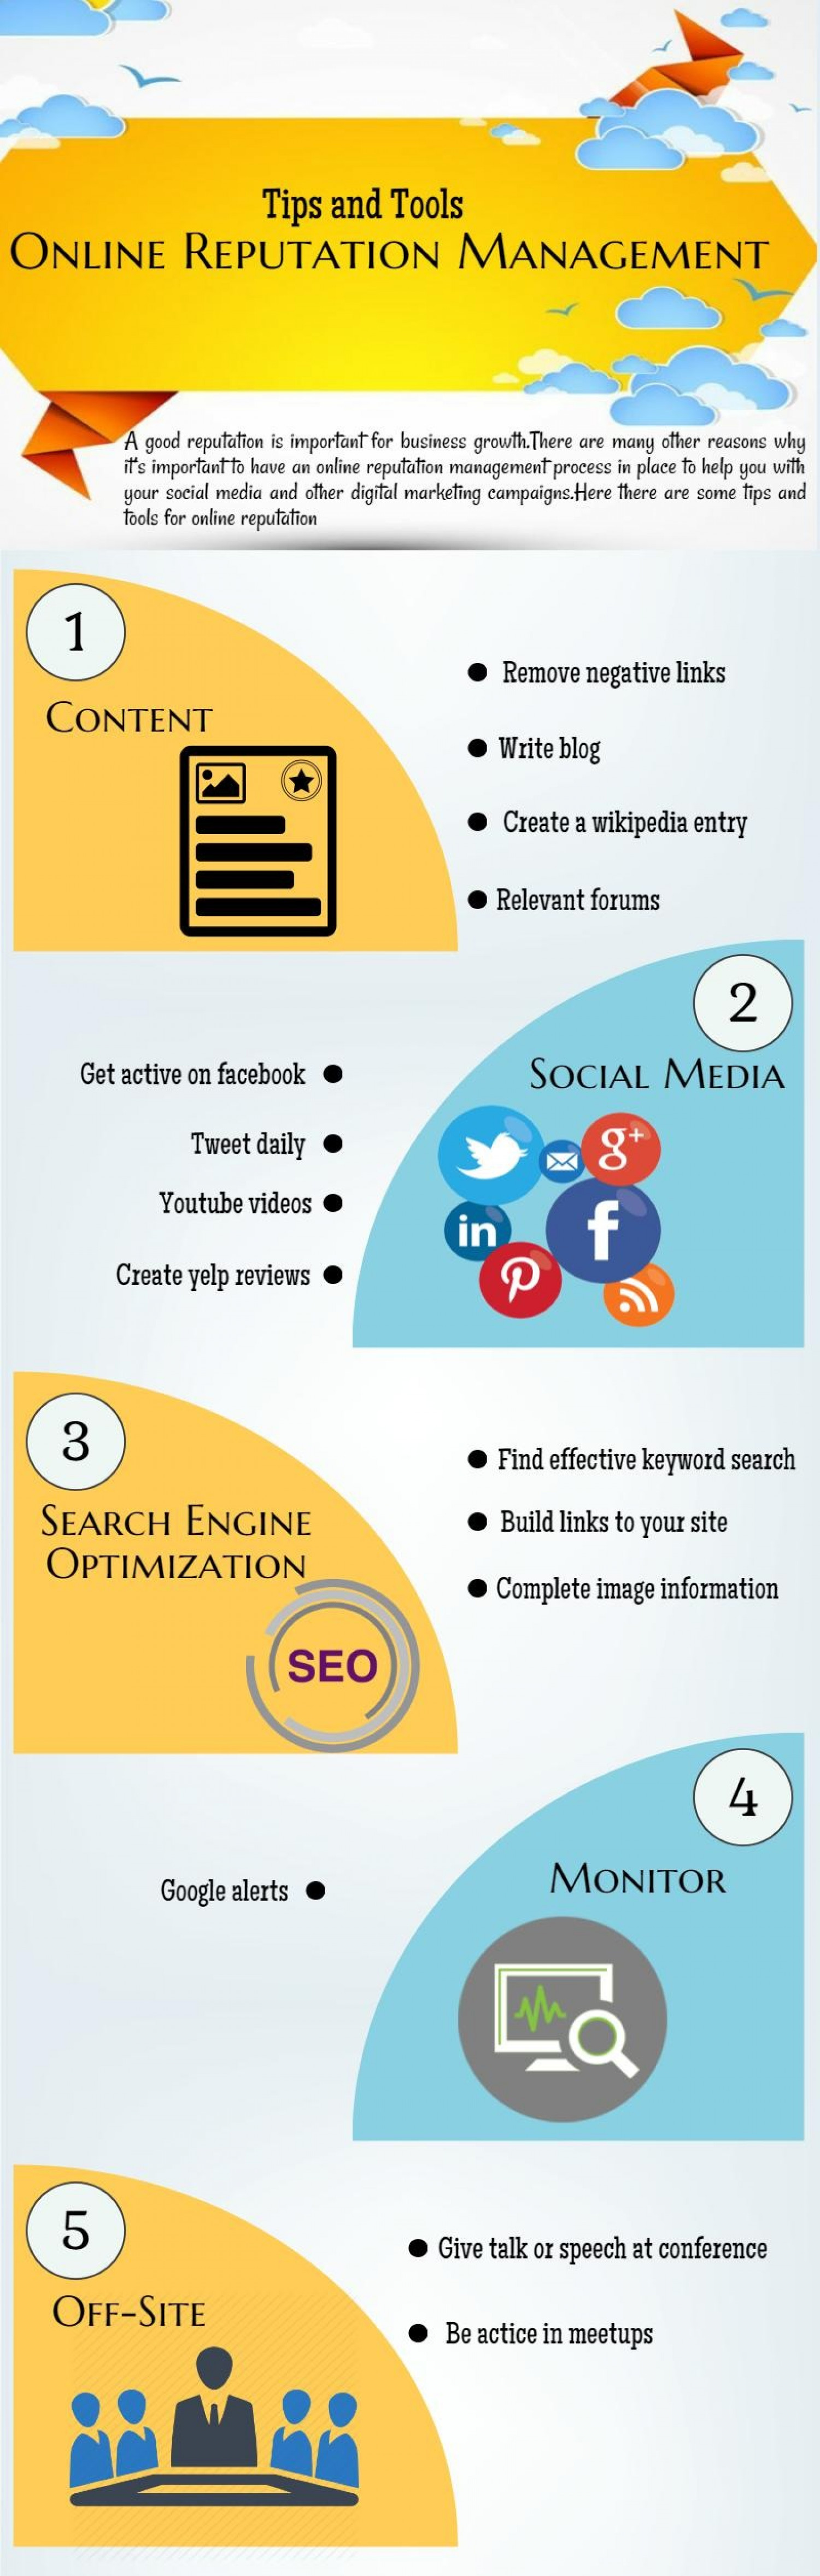 Ways to Use Social Media for Online Reputation Management Infographic